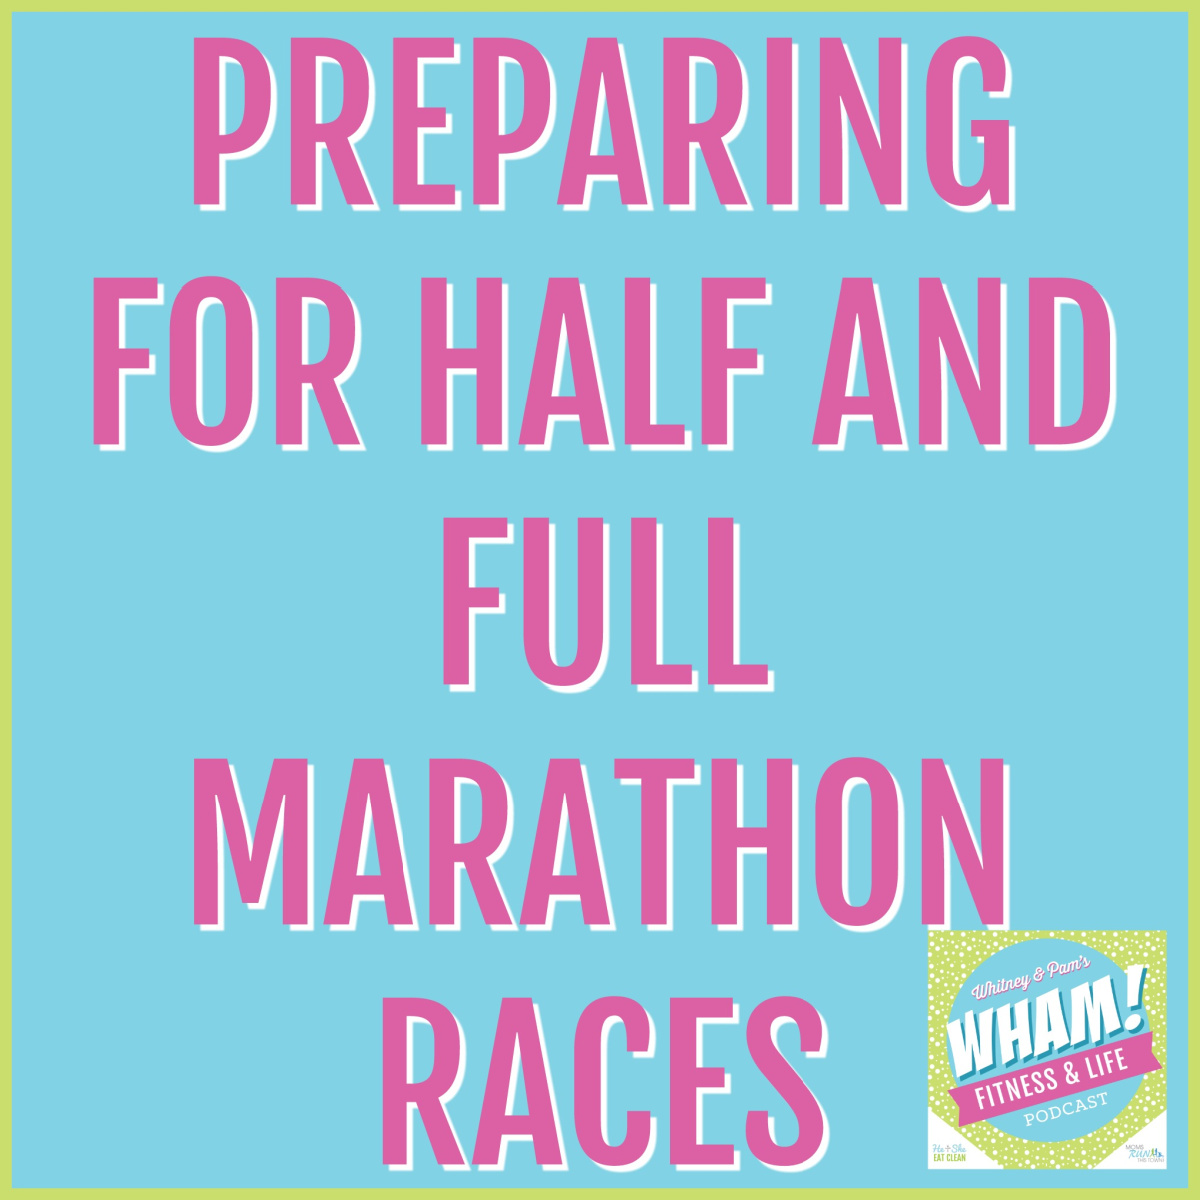 text reads Preparing for Half and Full Marathon Races - WHAM Podcast